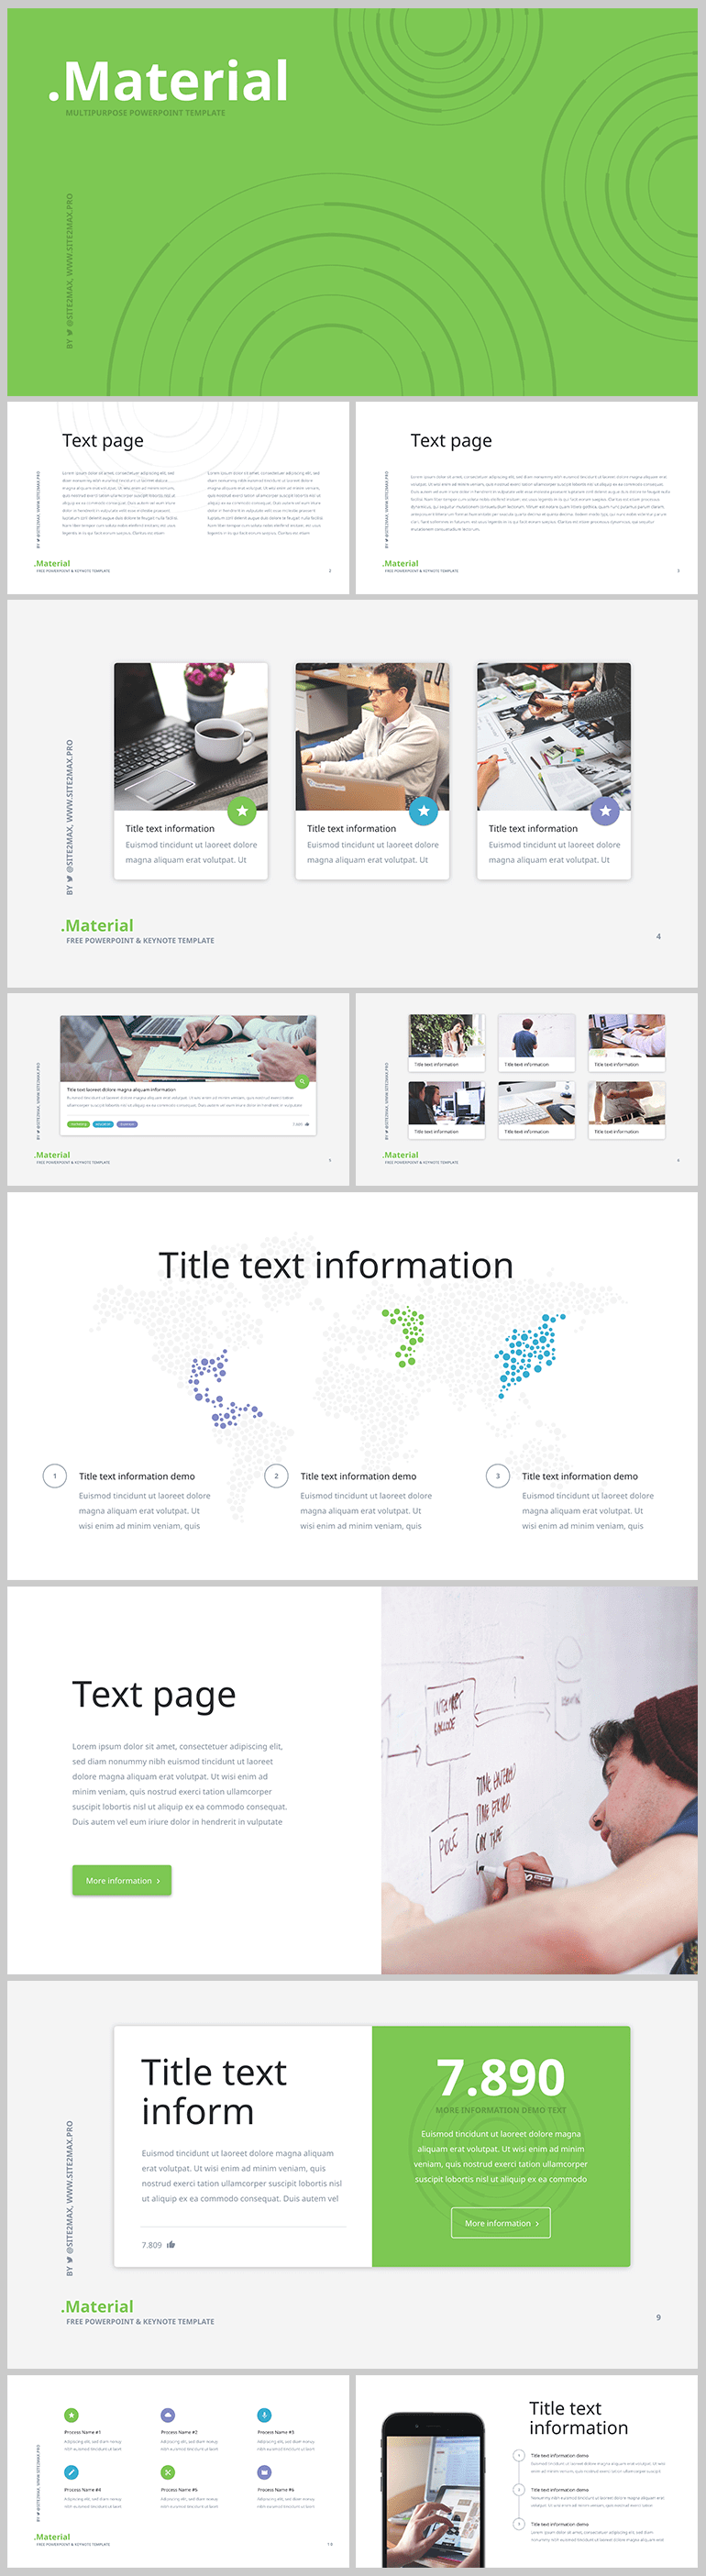 14 Template De Prsentation Powerpoint Material